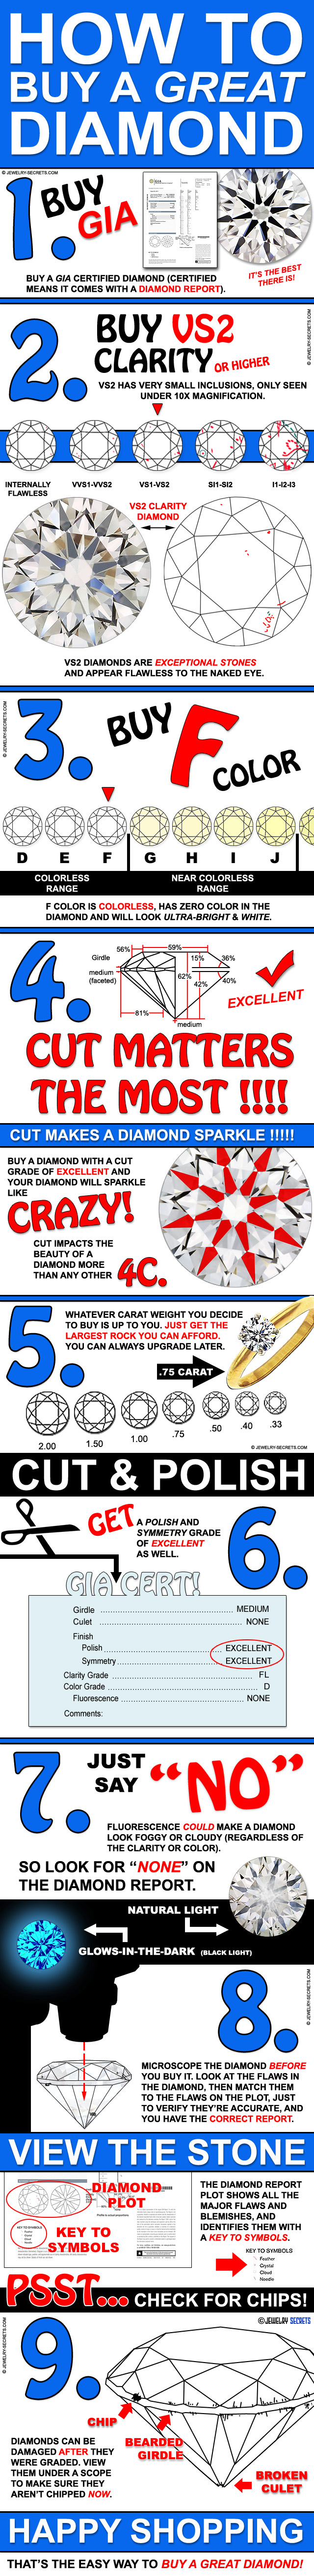 How To Buy A Great Diamond Infographic